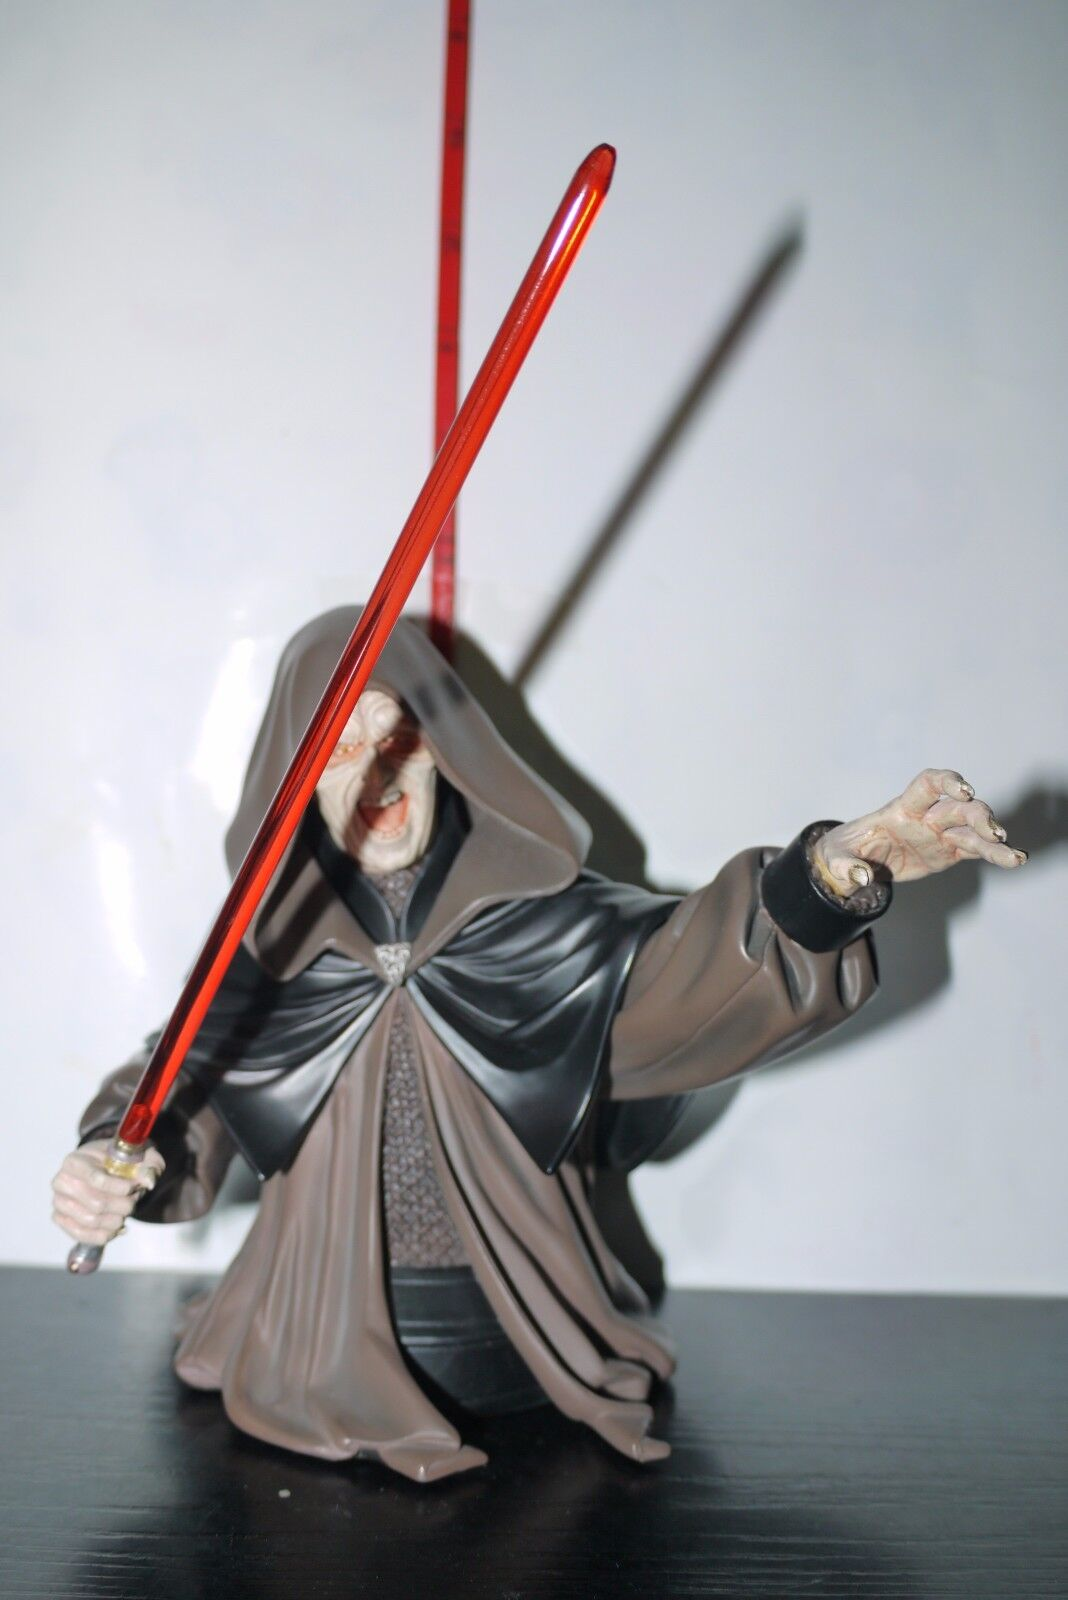 Star Wars Revenge of the Sith Emperor Palpatine Mini Bust GENTLE GIANT 107 4500